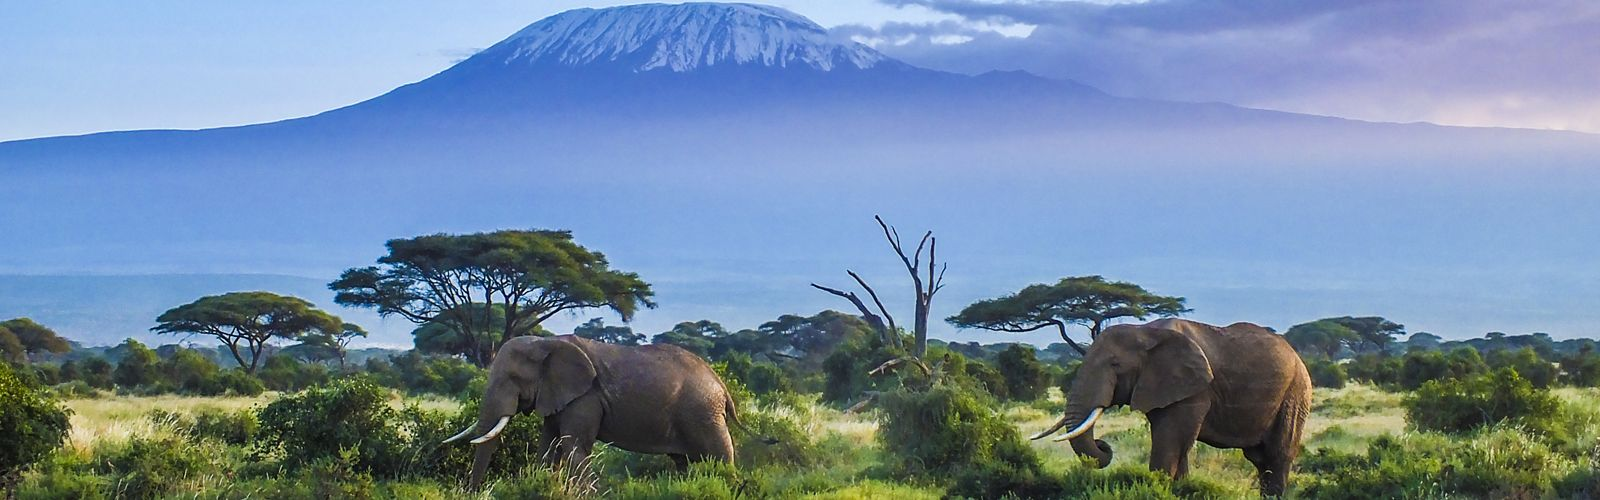 Elephants in Kilimanjaro